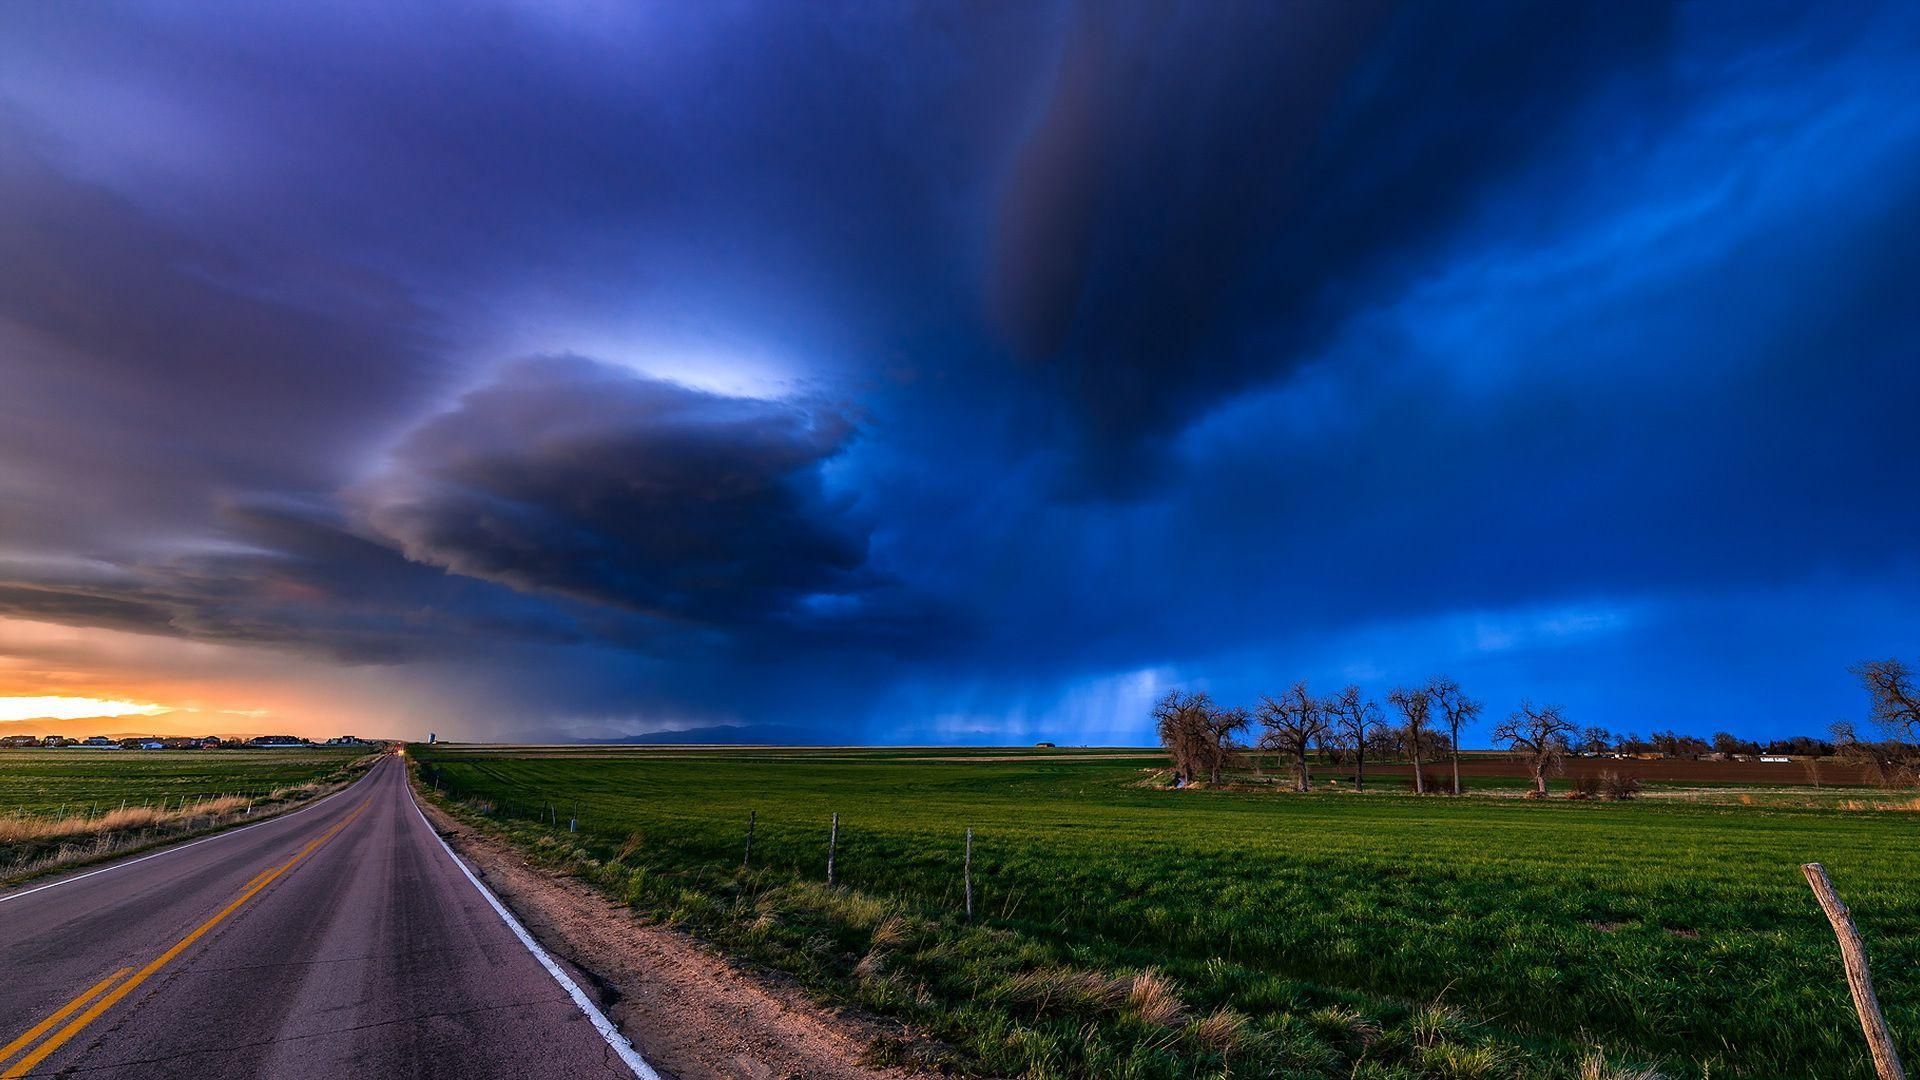 Cute Animated Merry Christmas Wallpaper Hd Stormy Clouds Above The Road Wallpaper Download Free